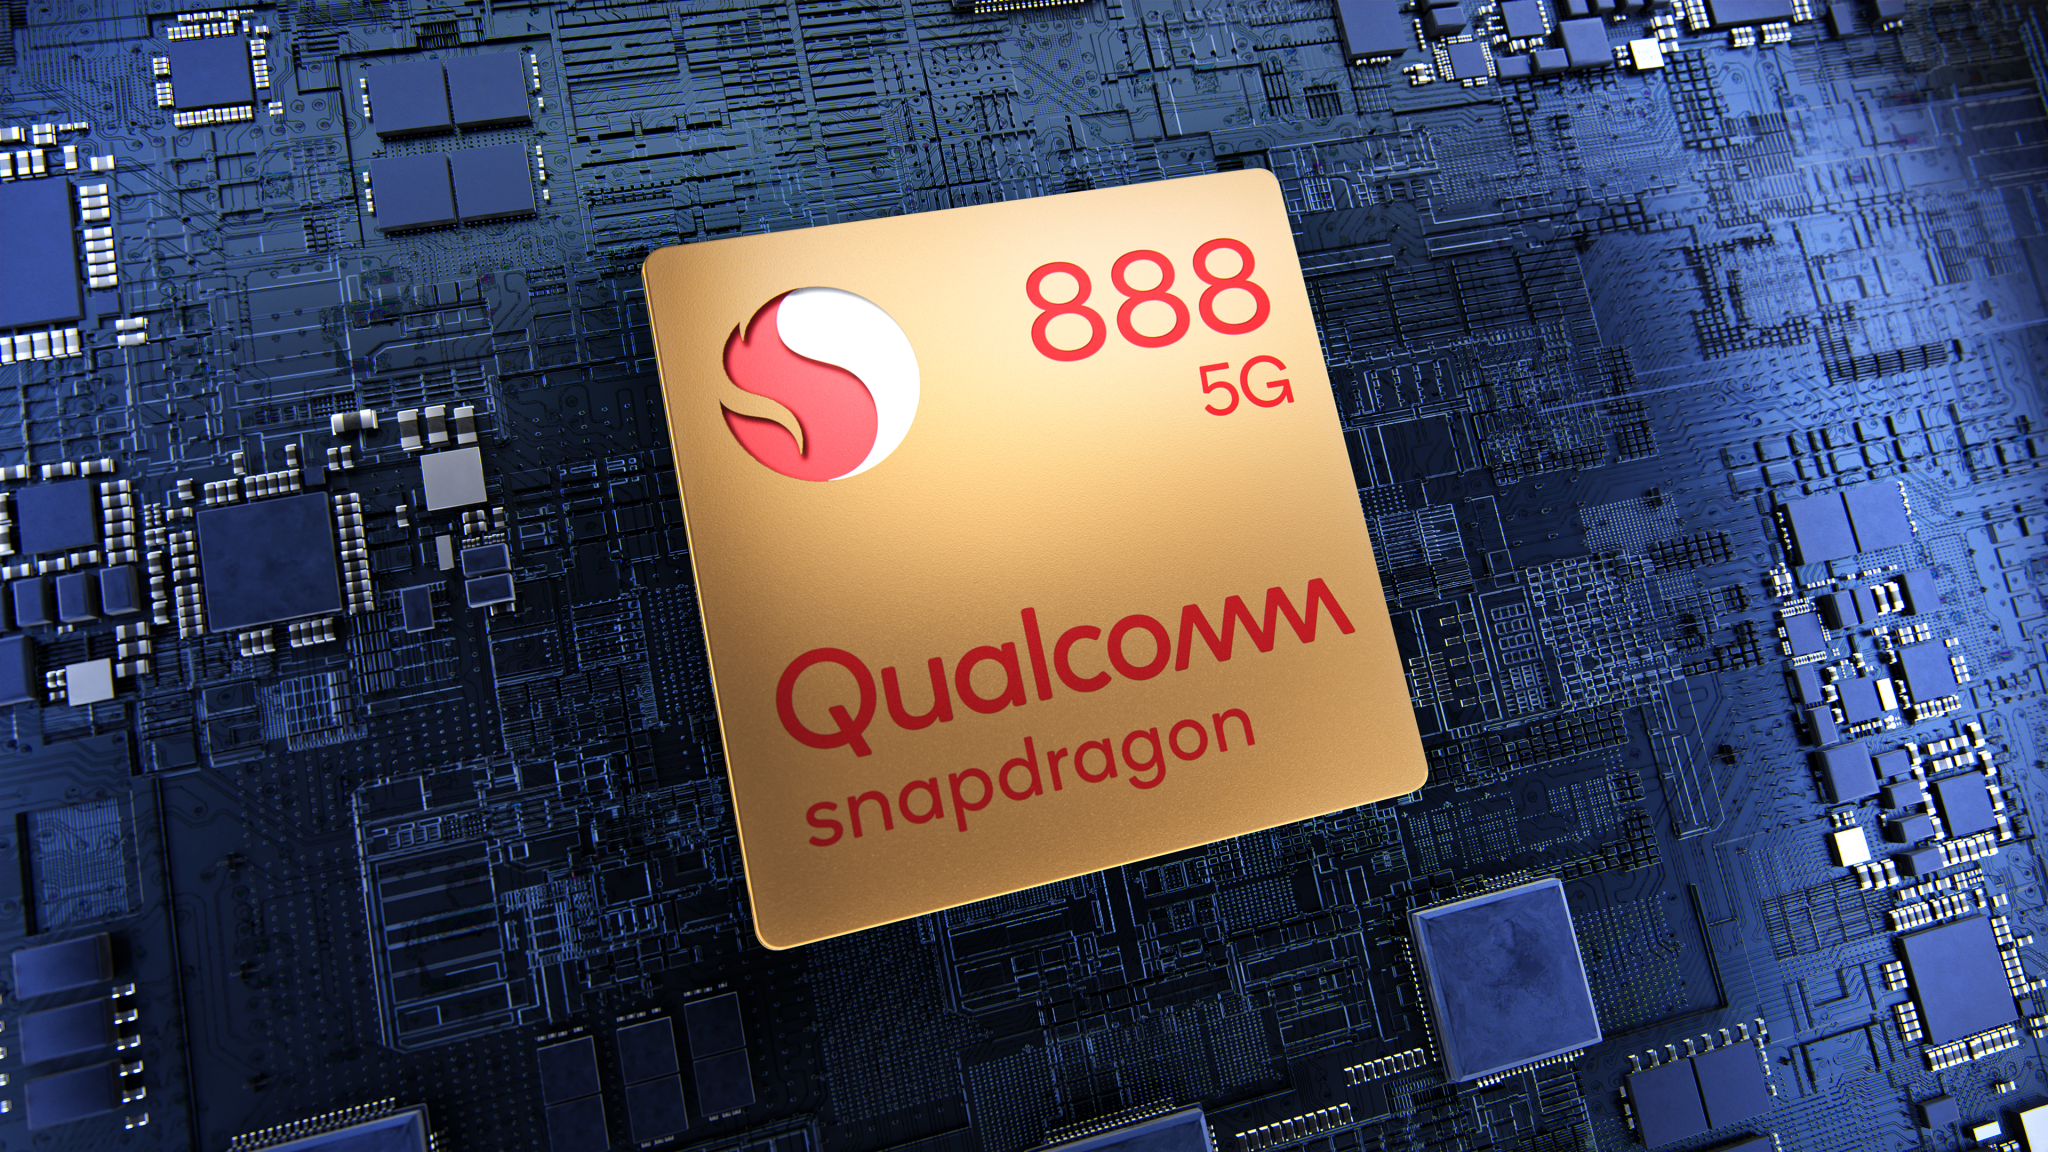 Por dentro de todas as especificações do snapdragon 888 5g